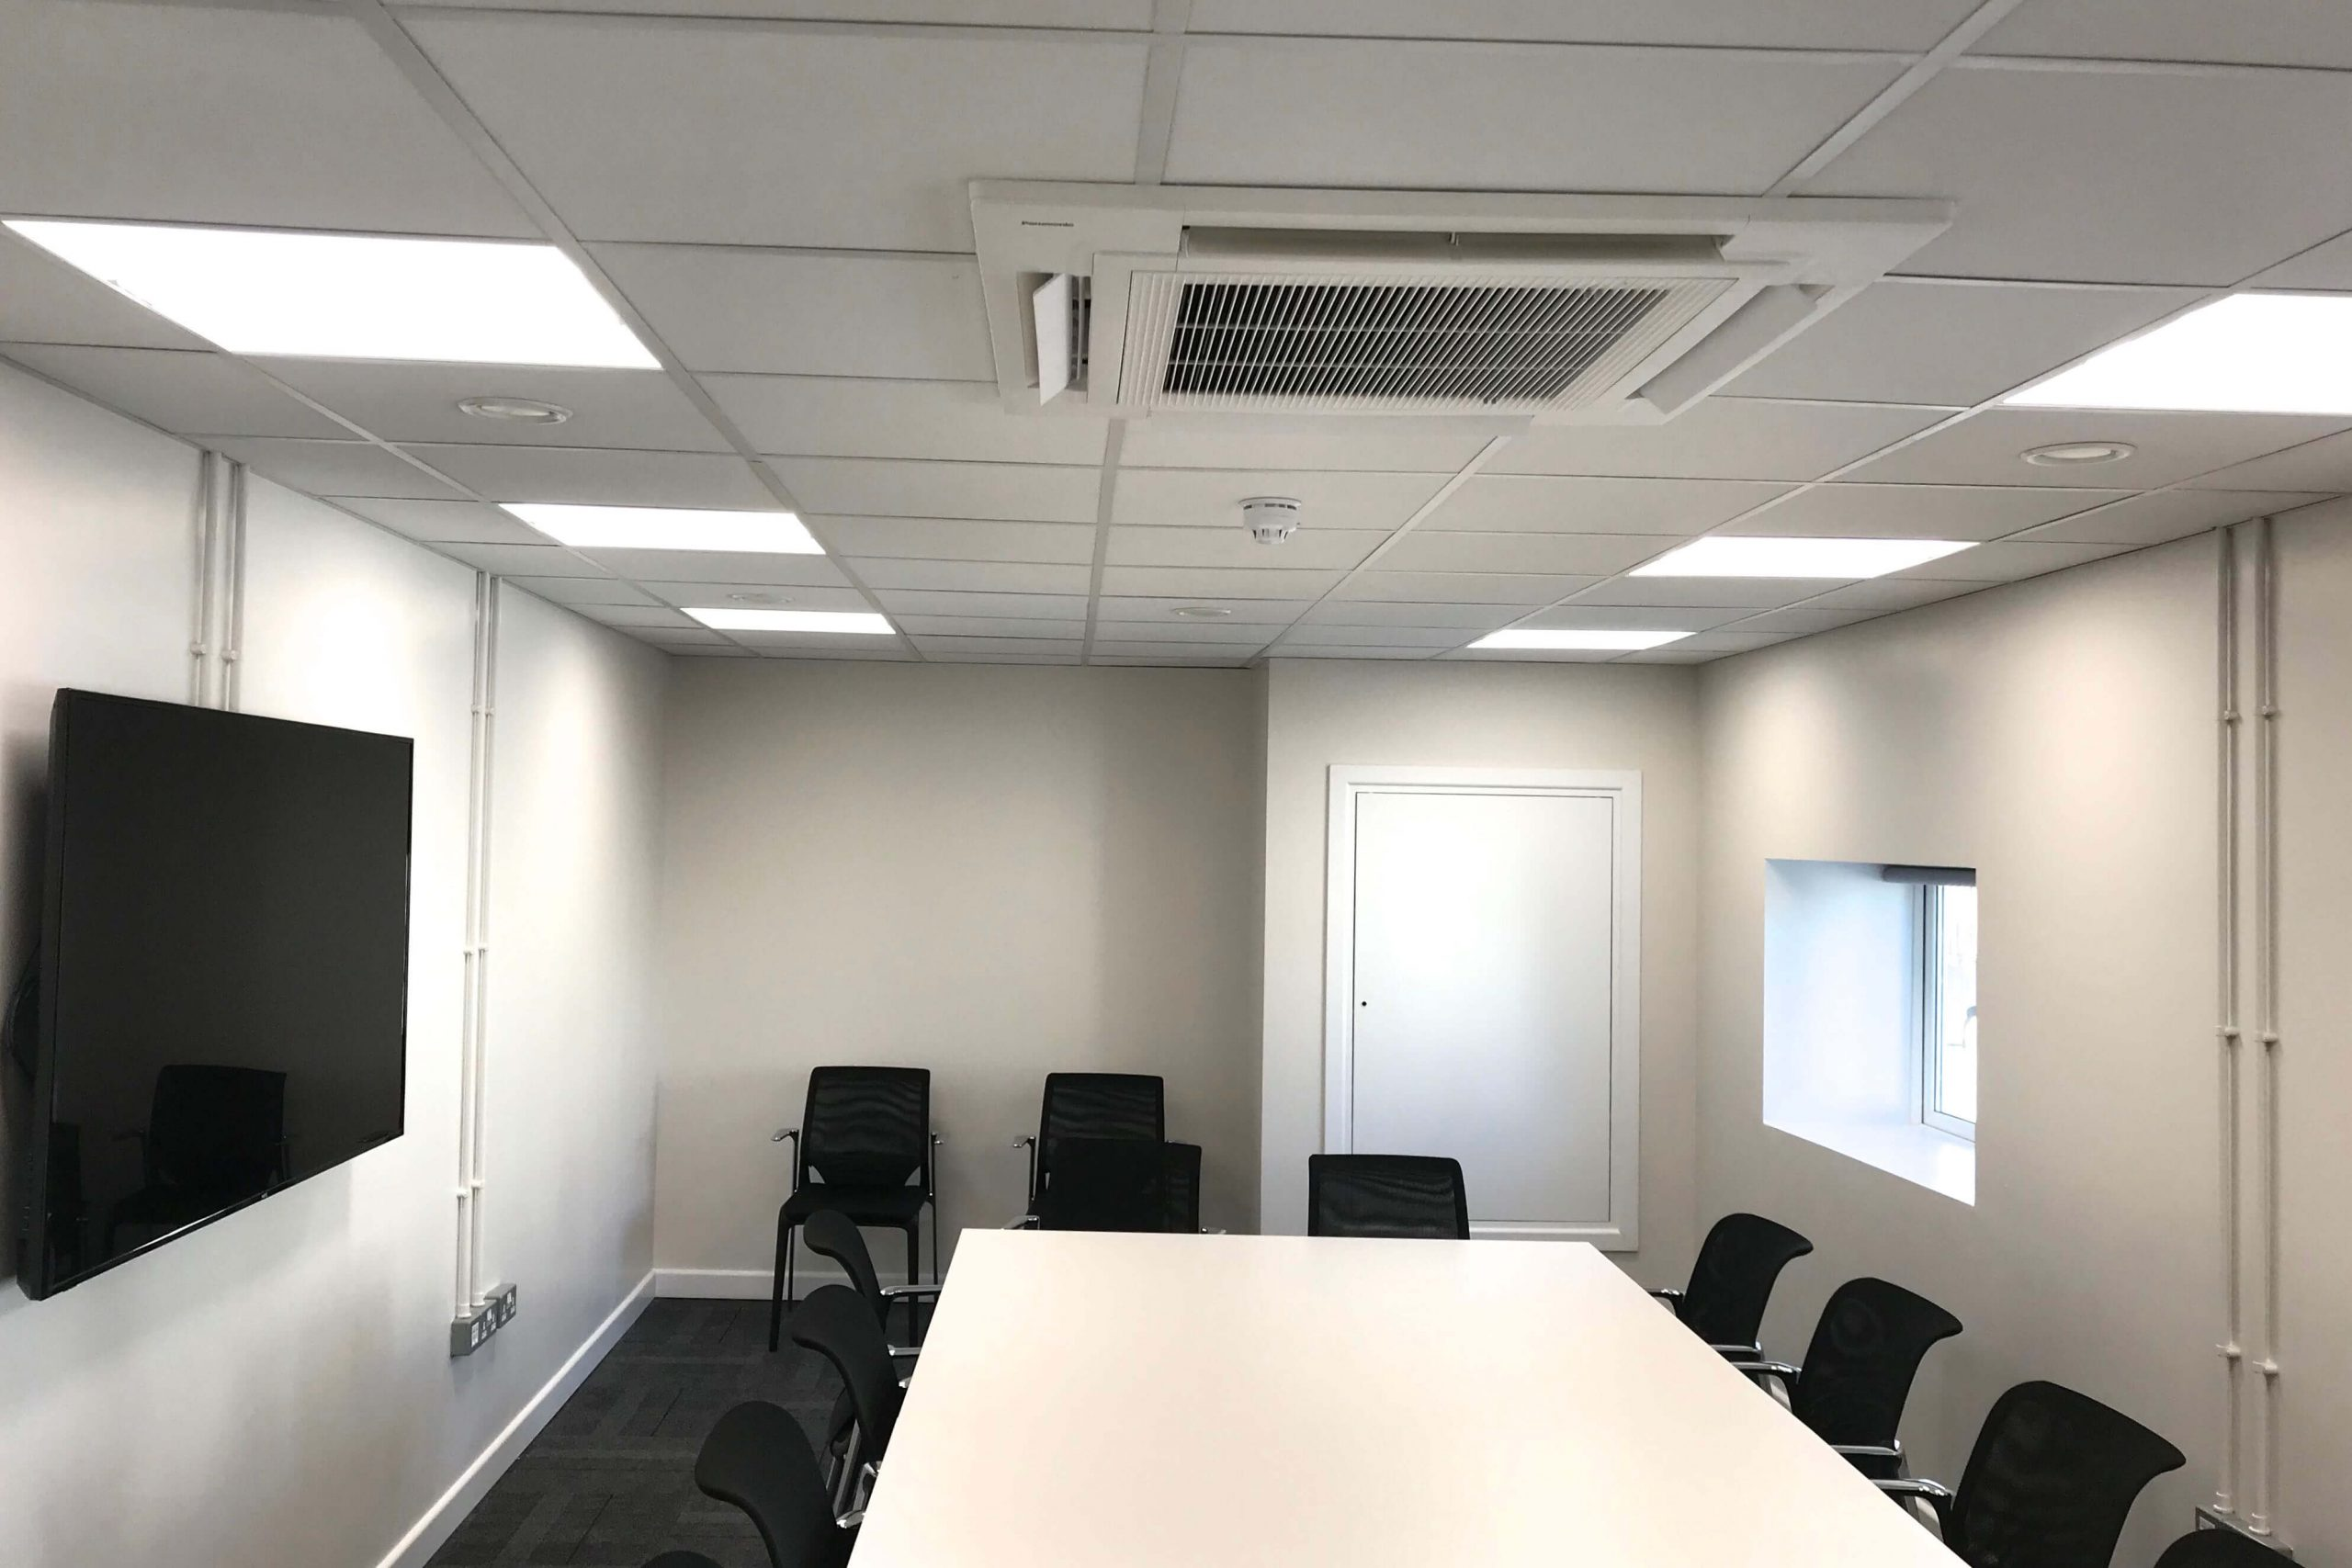 Norwood junction large commercial air conditioning solution by SubCool FM white cassette ceiling unit in meeting room